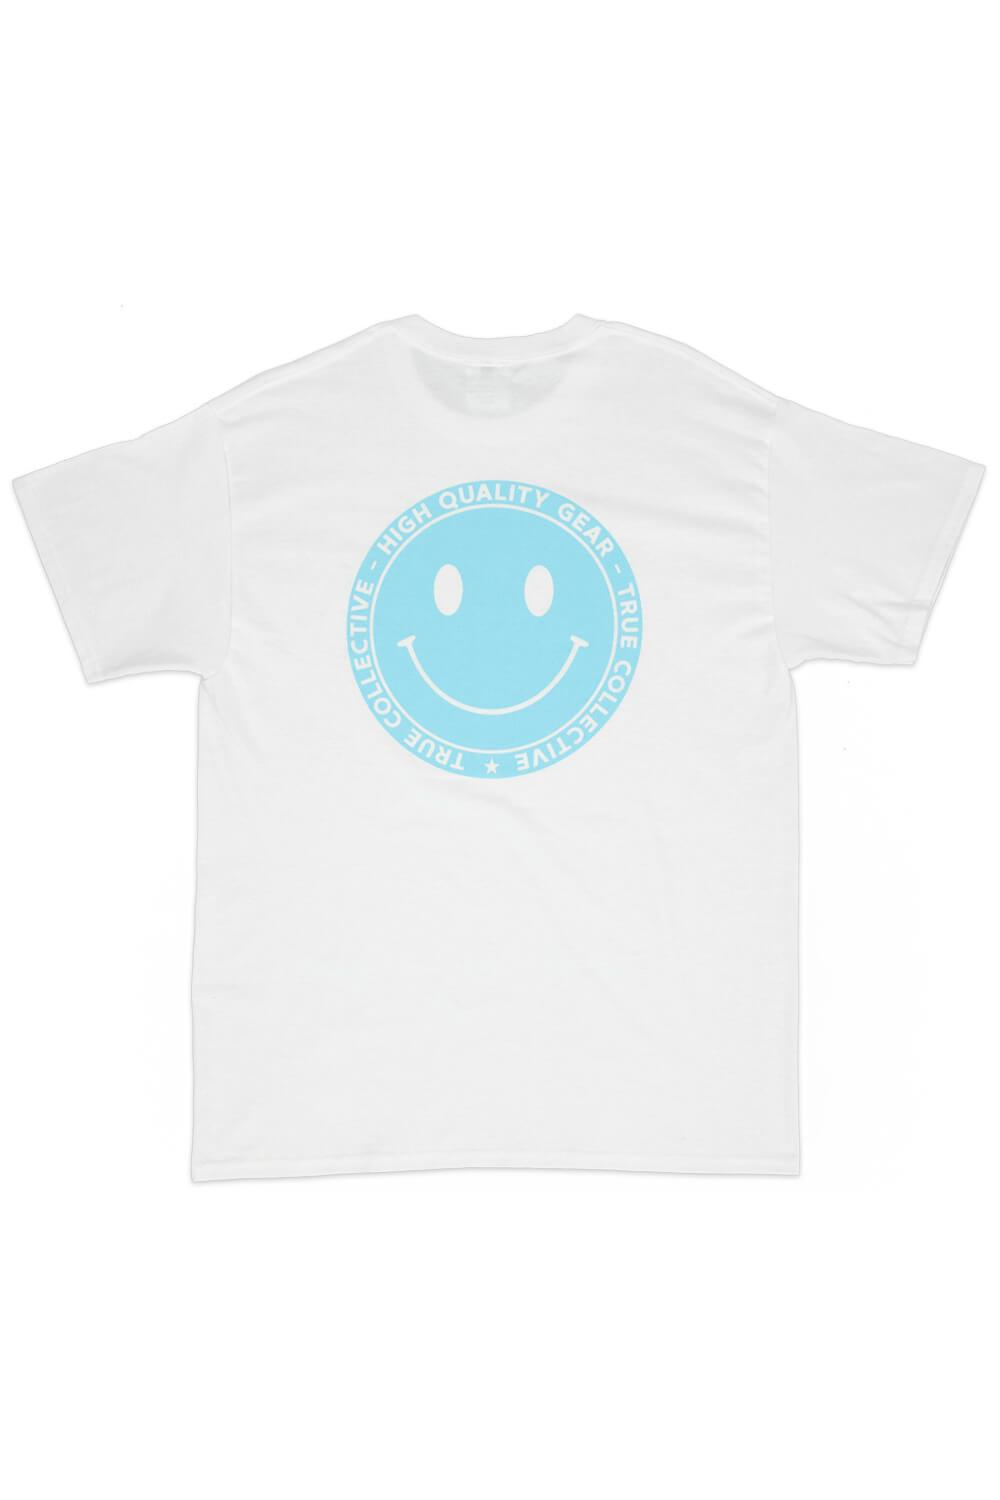 Smiley T-shirt White/Blue